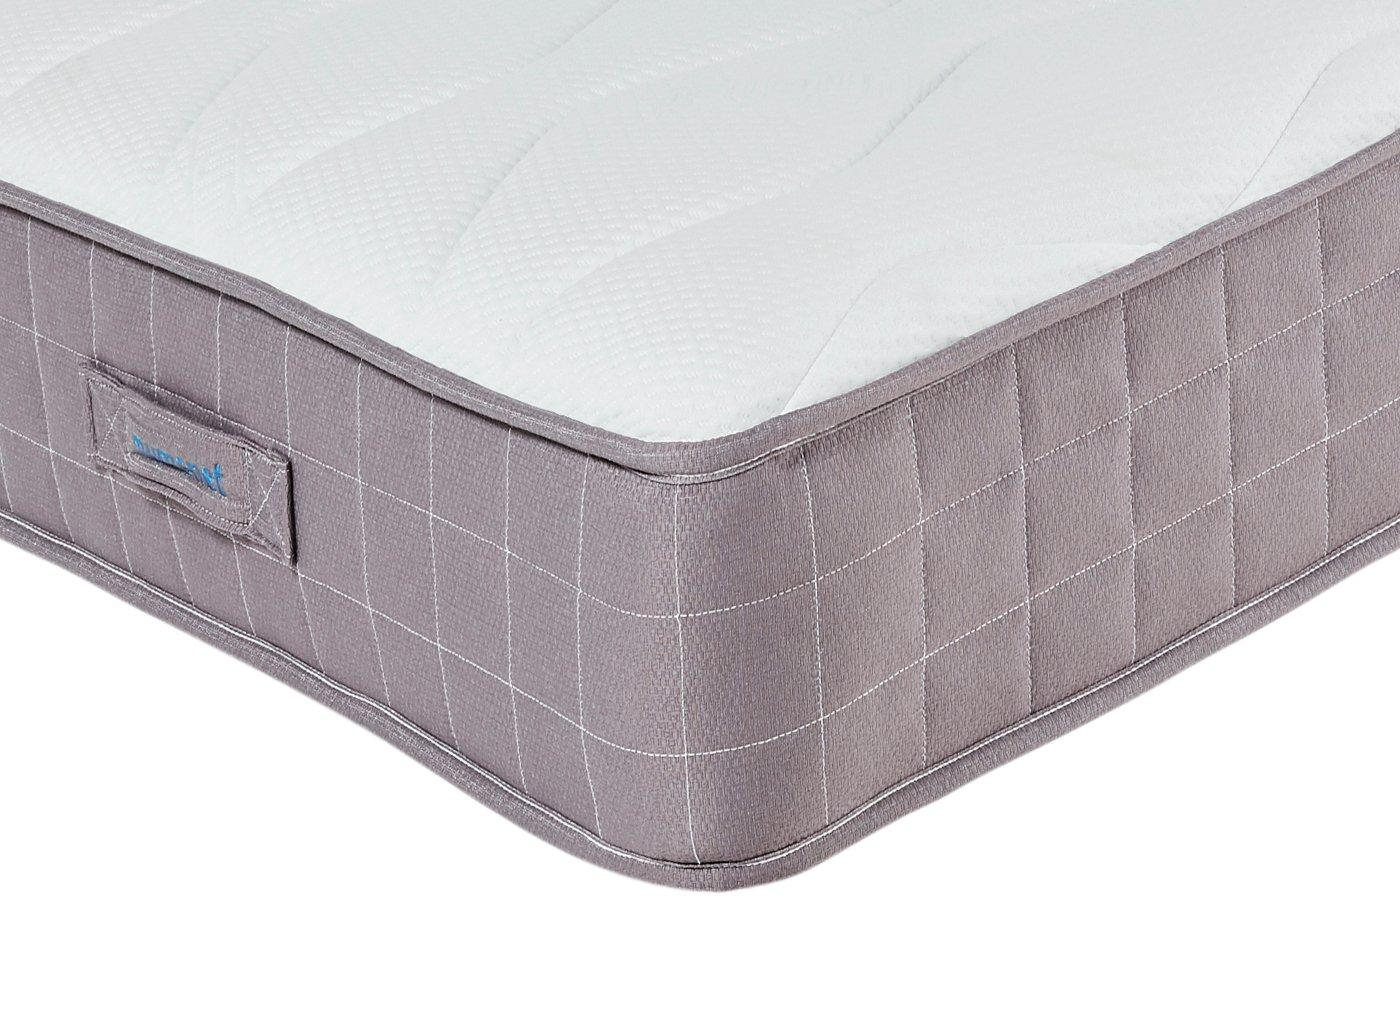 Mumsnet Spirit K Mattress 5'0 King